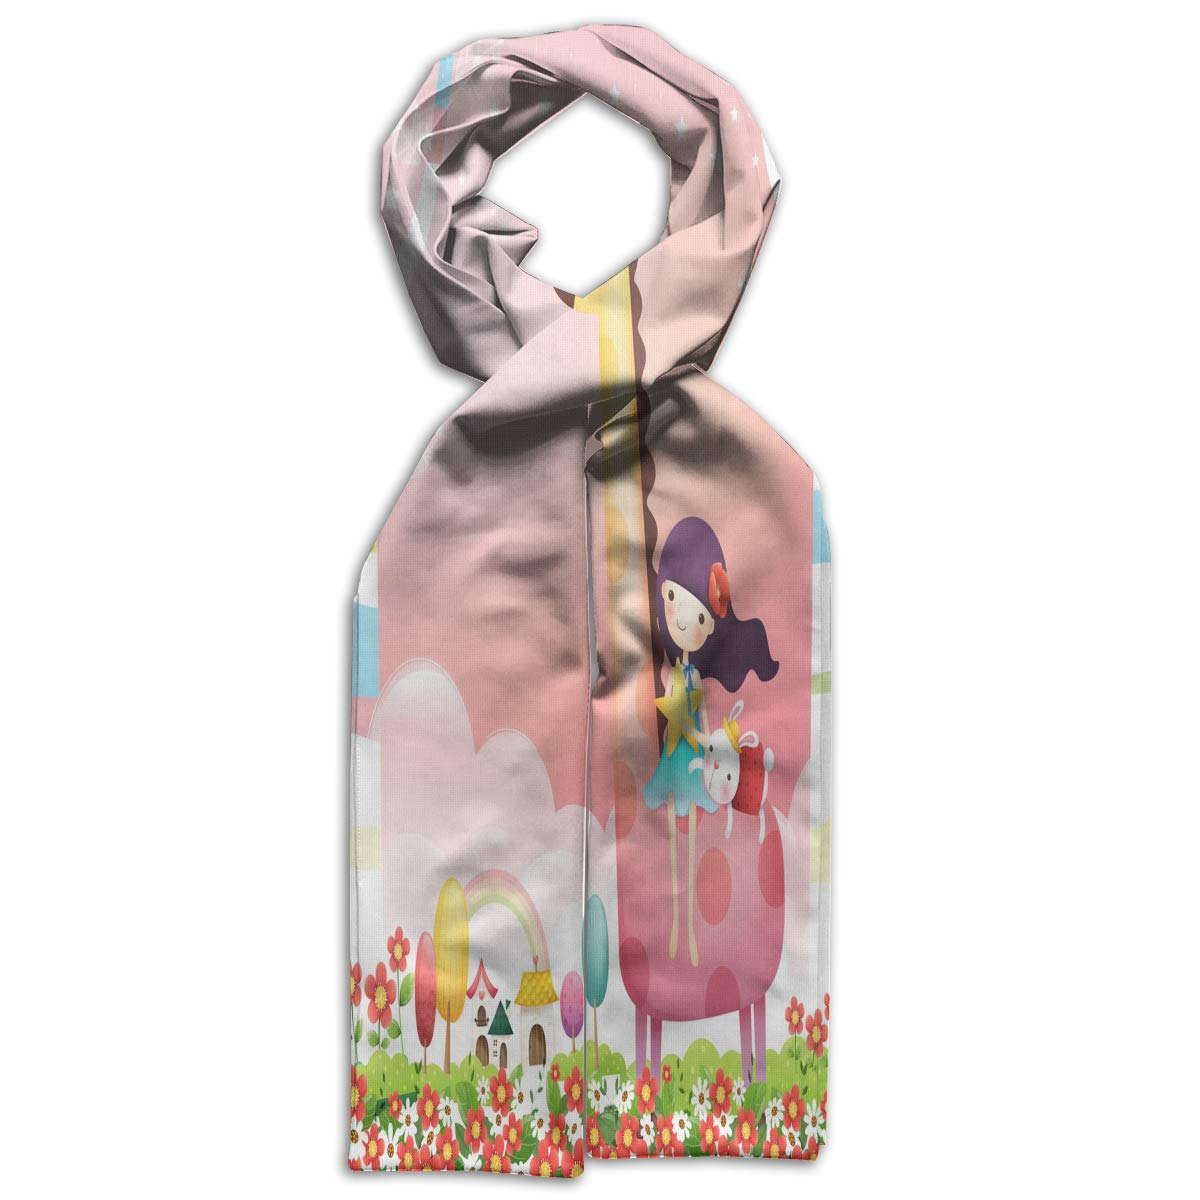 Kids Scarf Girl With Rabbit On A Giraffe Neckerchief Winter Warm Bandelet For Boys